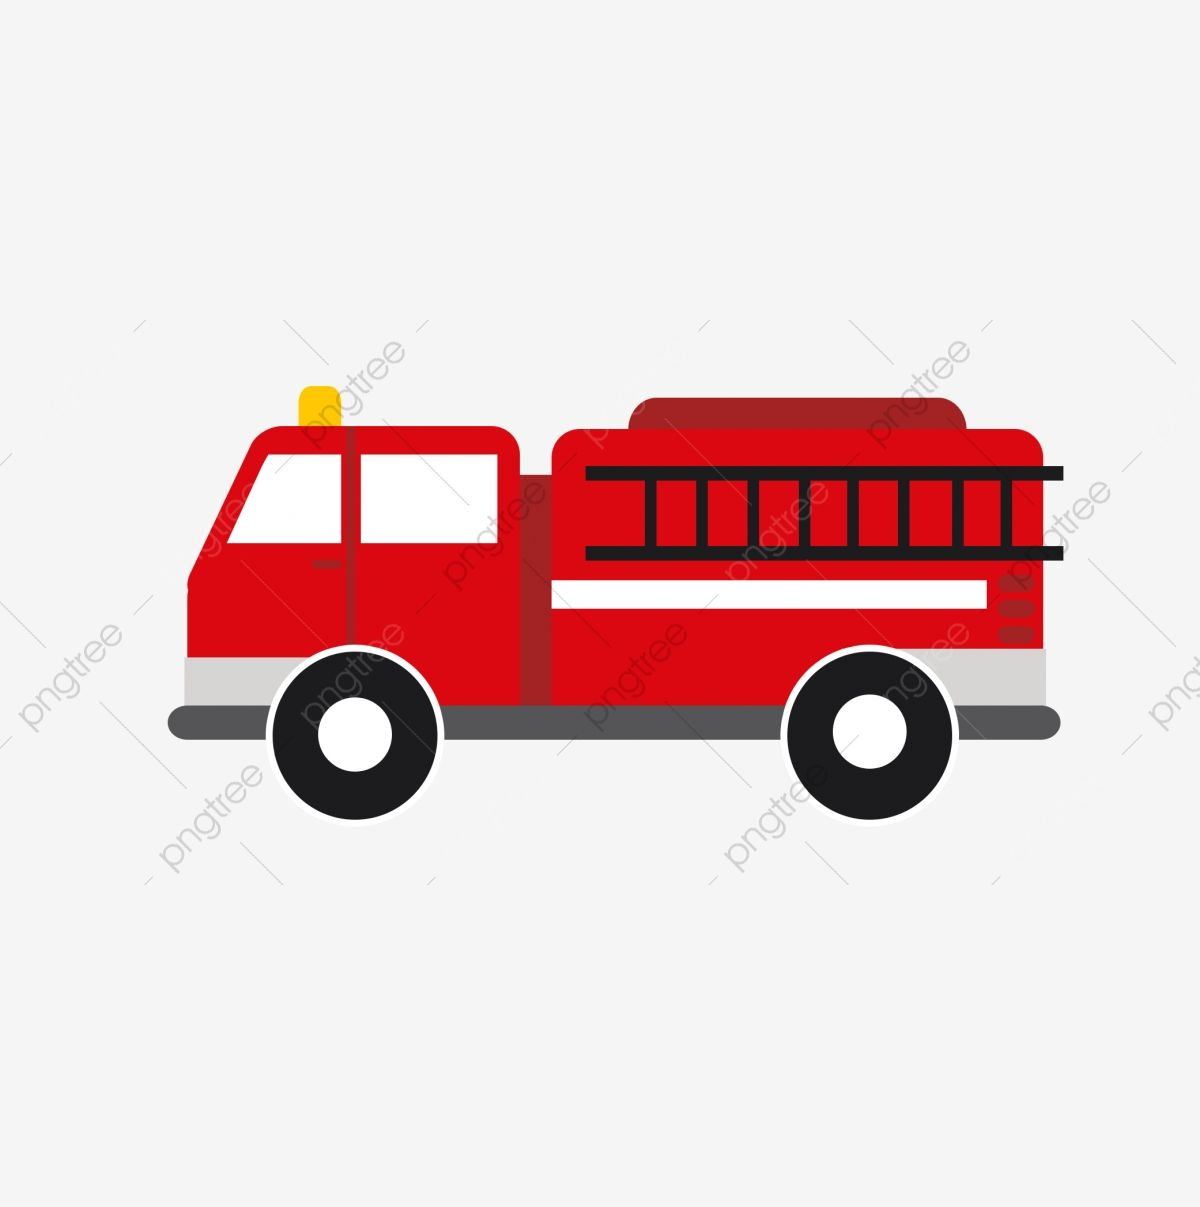 Fire Truck Extinguishing Q Version Cartoon 119 Red Lovely Png Transparent Clipart Image And Psd File For Free Download Fire Trucks Truck Theme Room Fire Truck Party